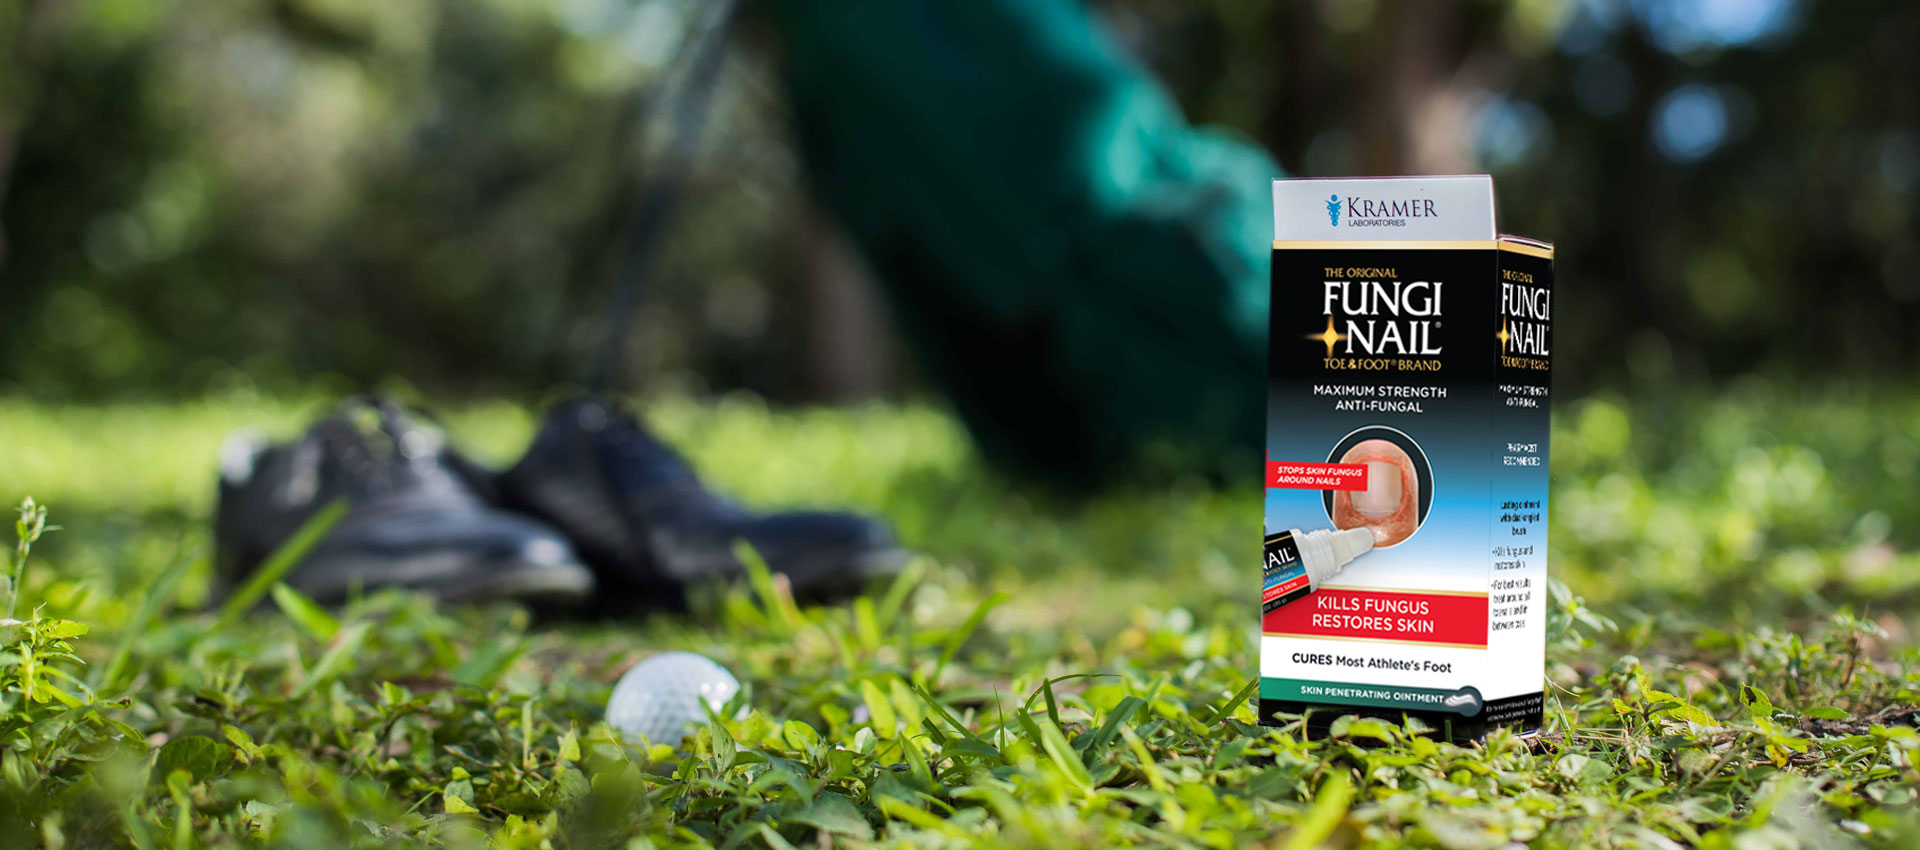 Fungi Nail Athlete's Foot Treatment with Golf Shoes